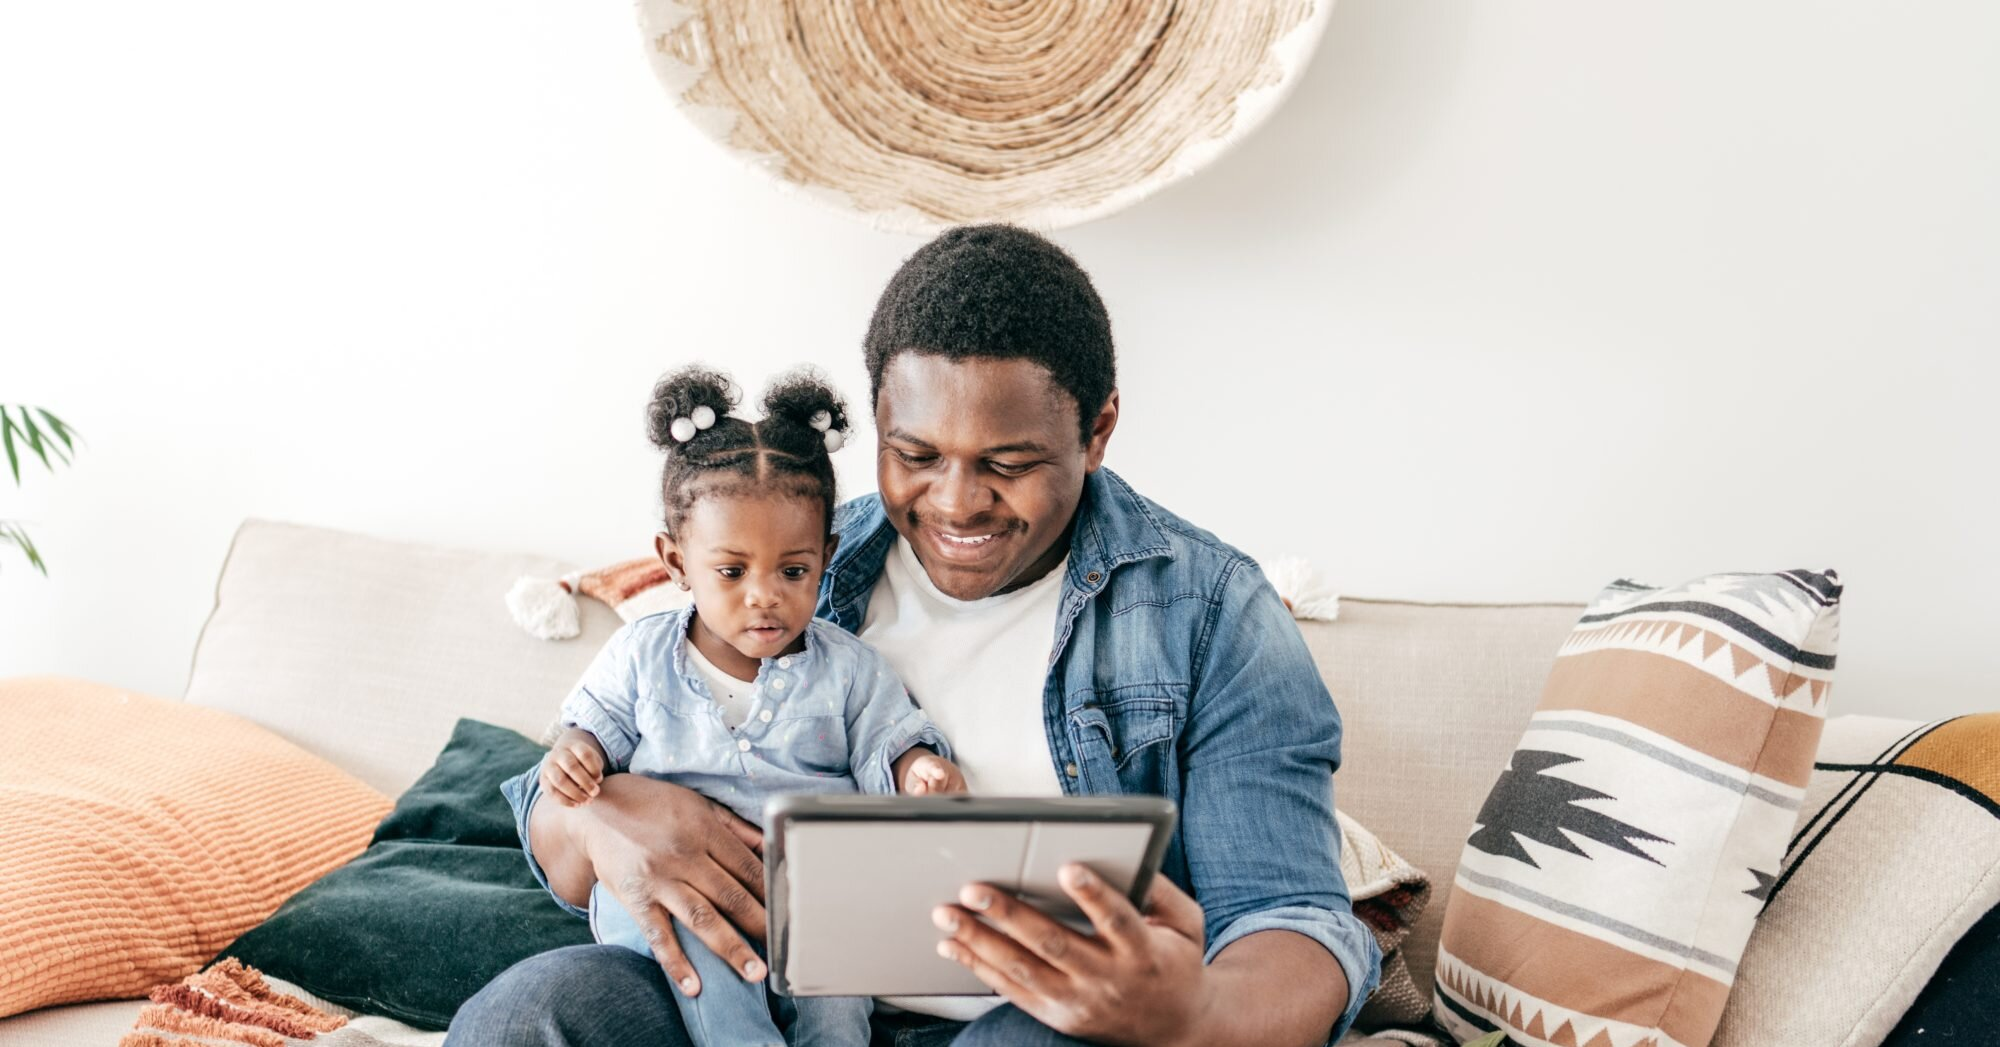 How to Celebrate Father's Day During Social Distancing